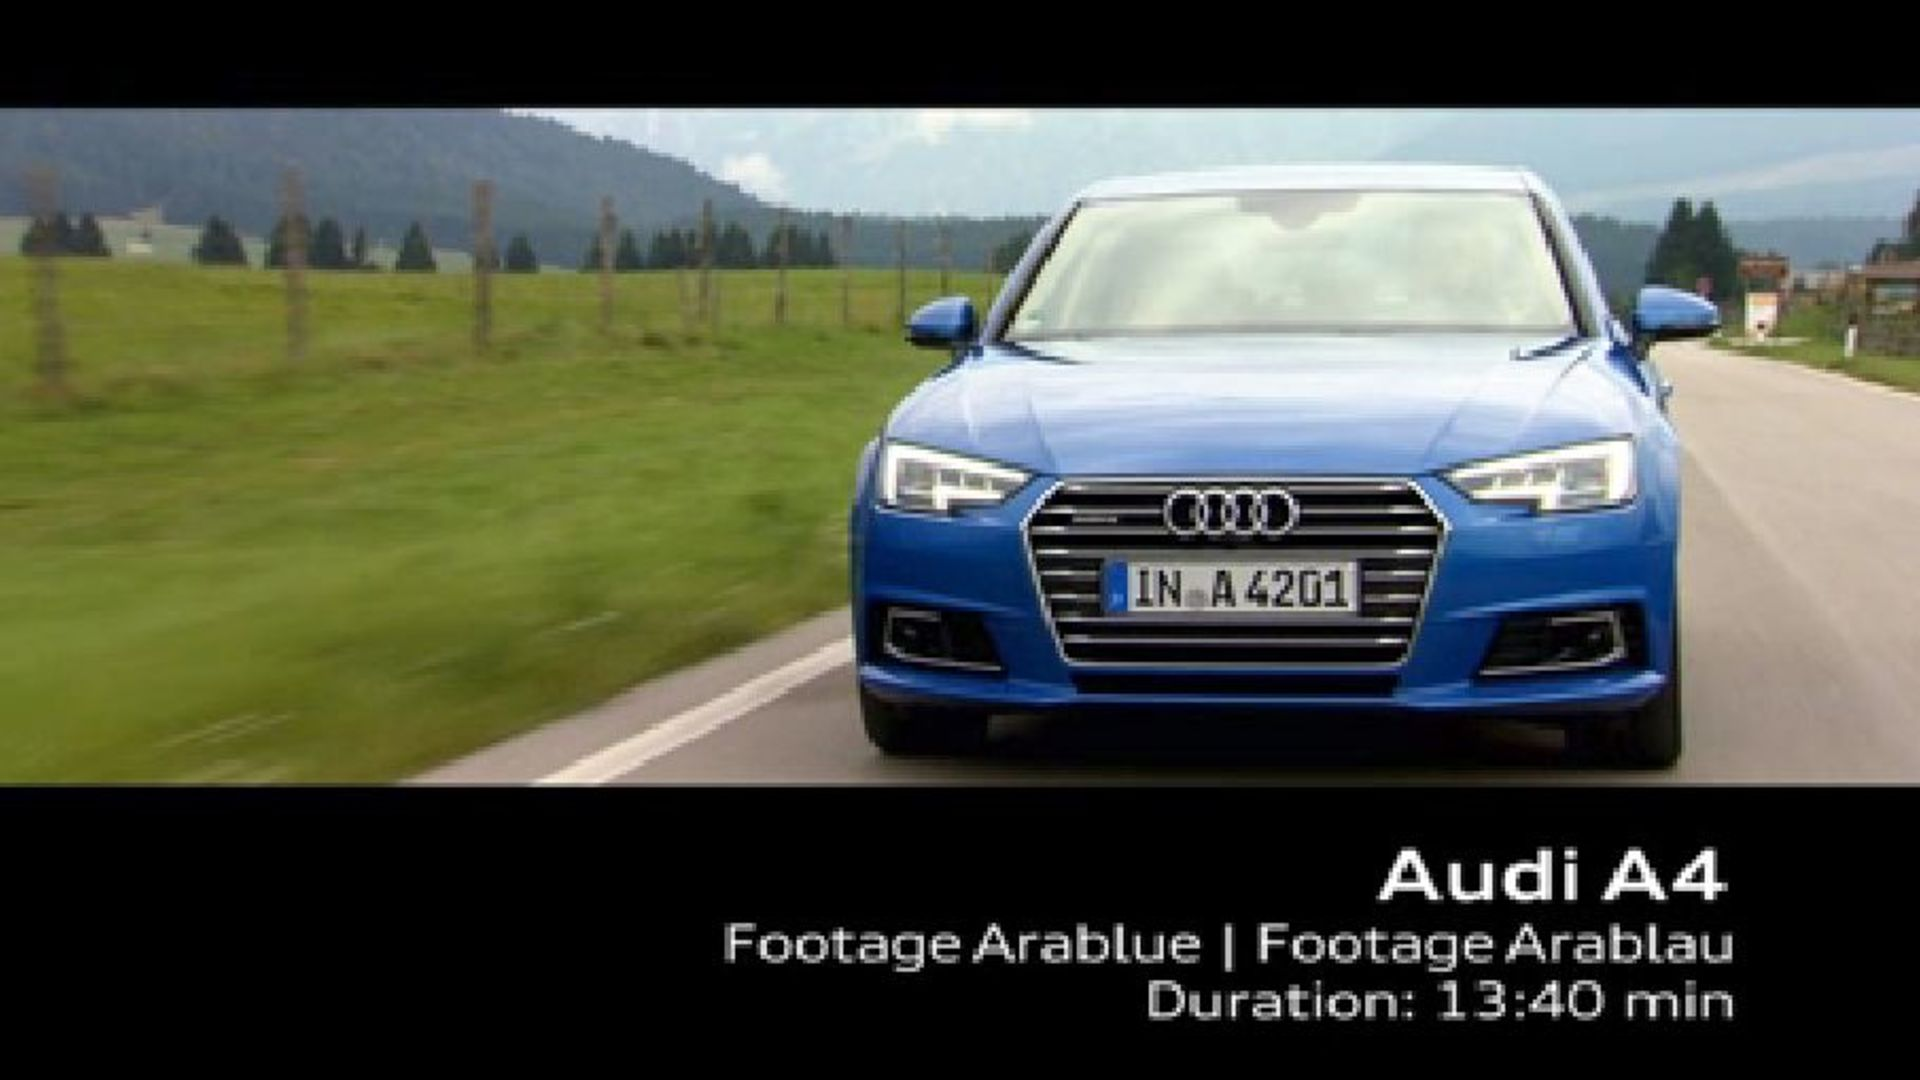 Audi A4 (2015) - Footage on Location